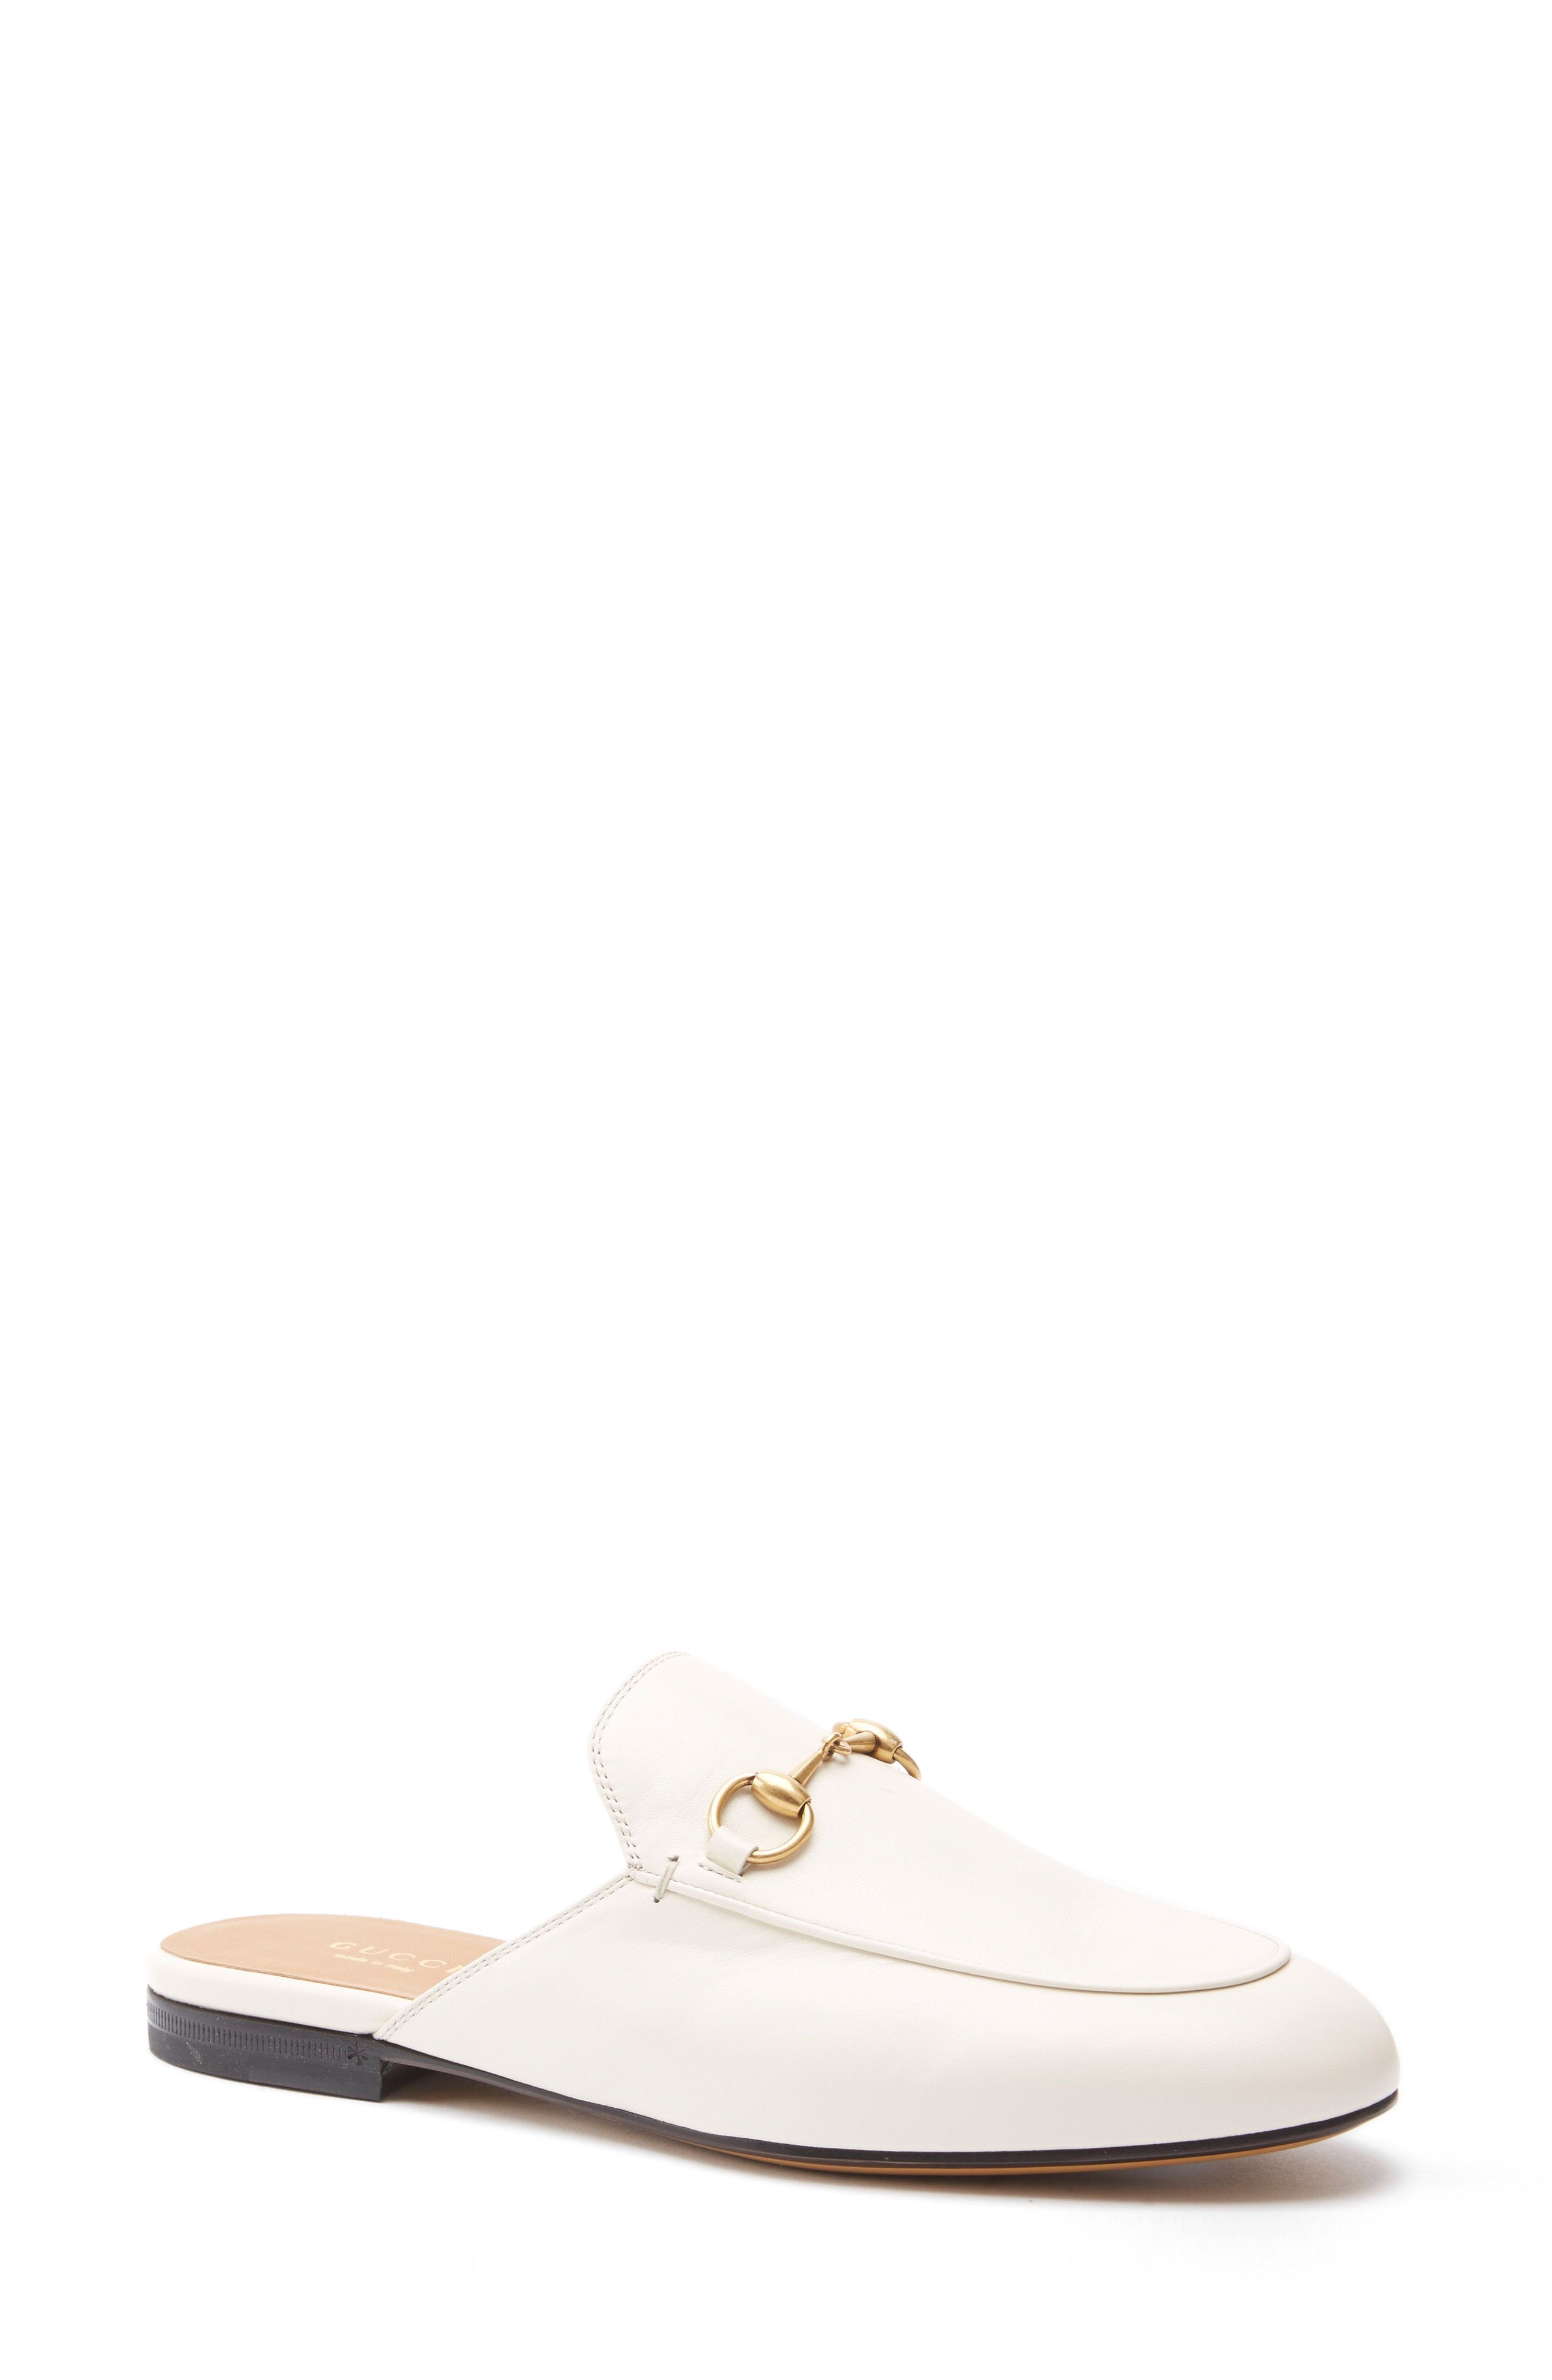 c46fd0514a8 Princetown Loafer Mule